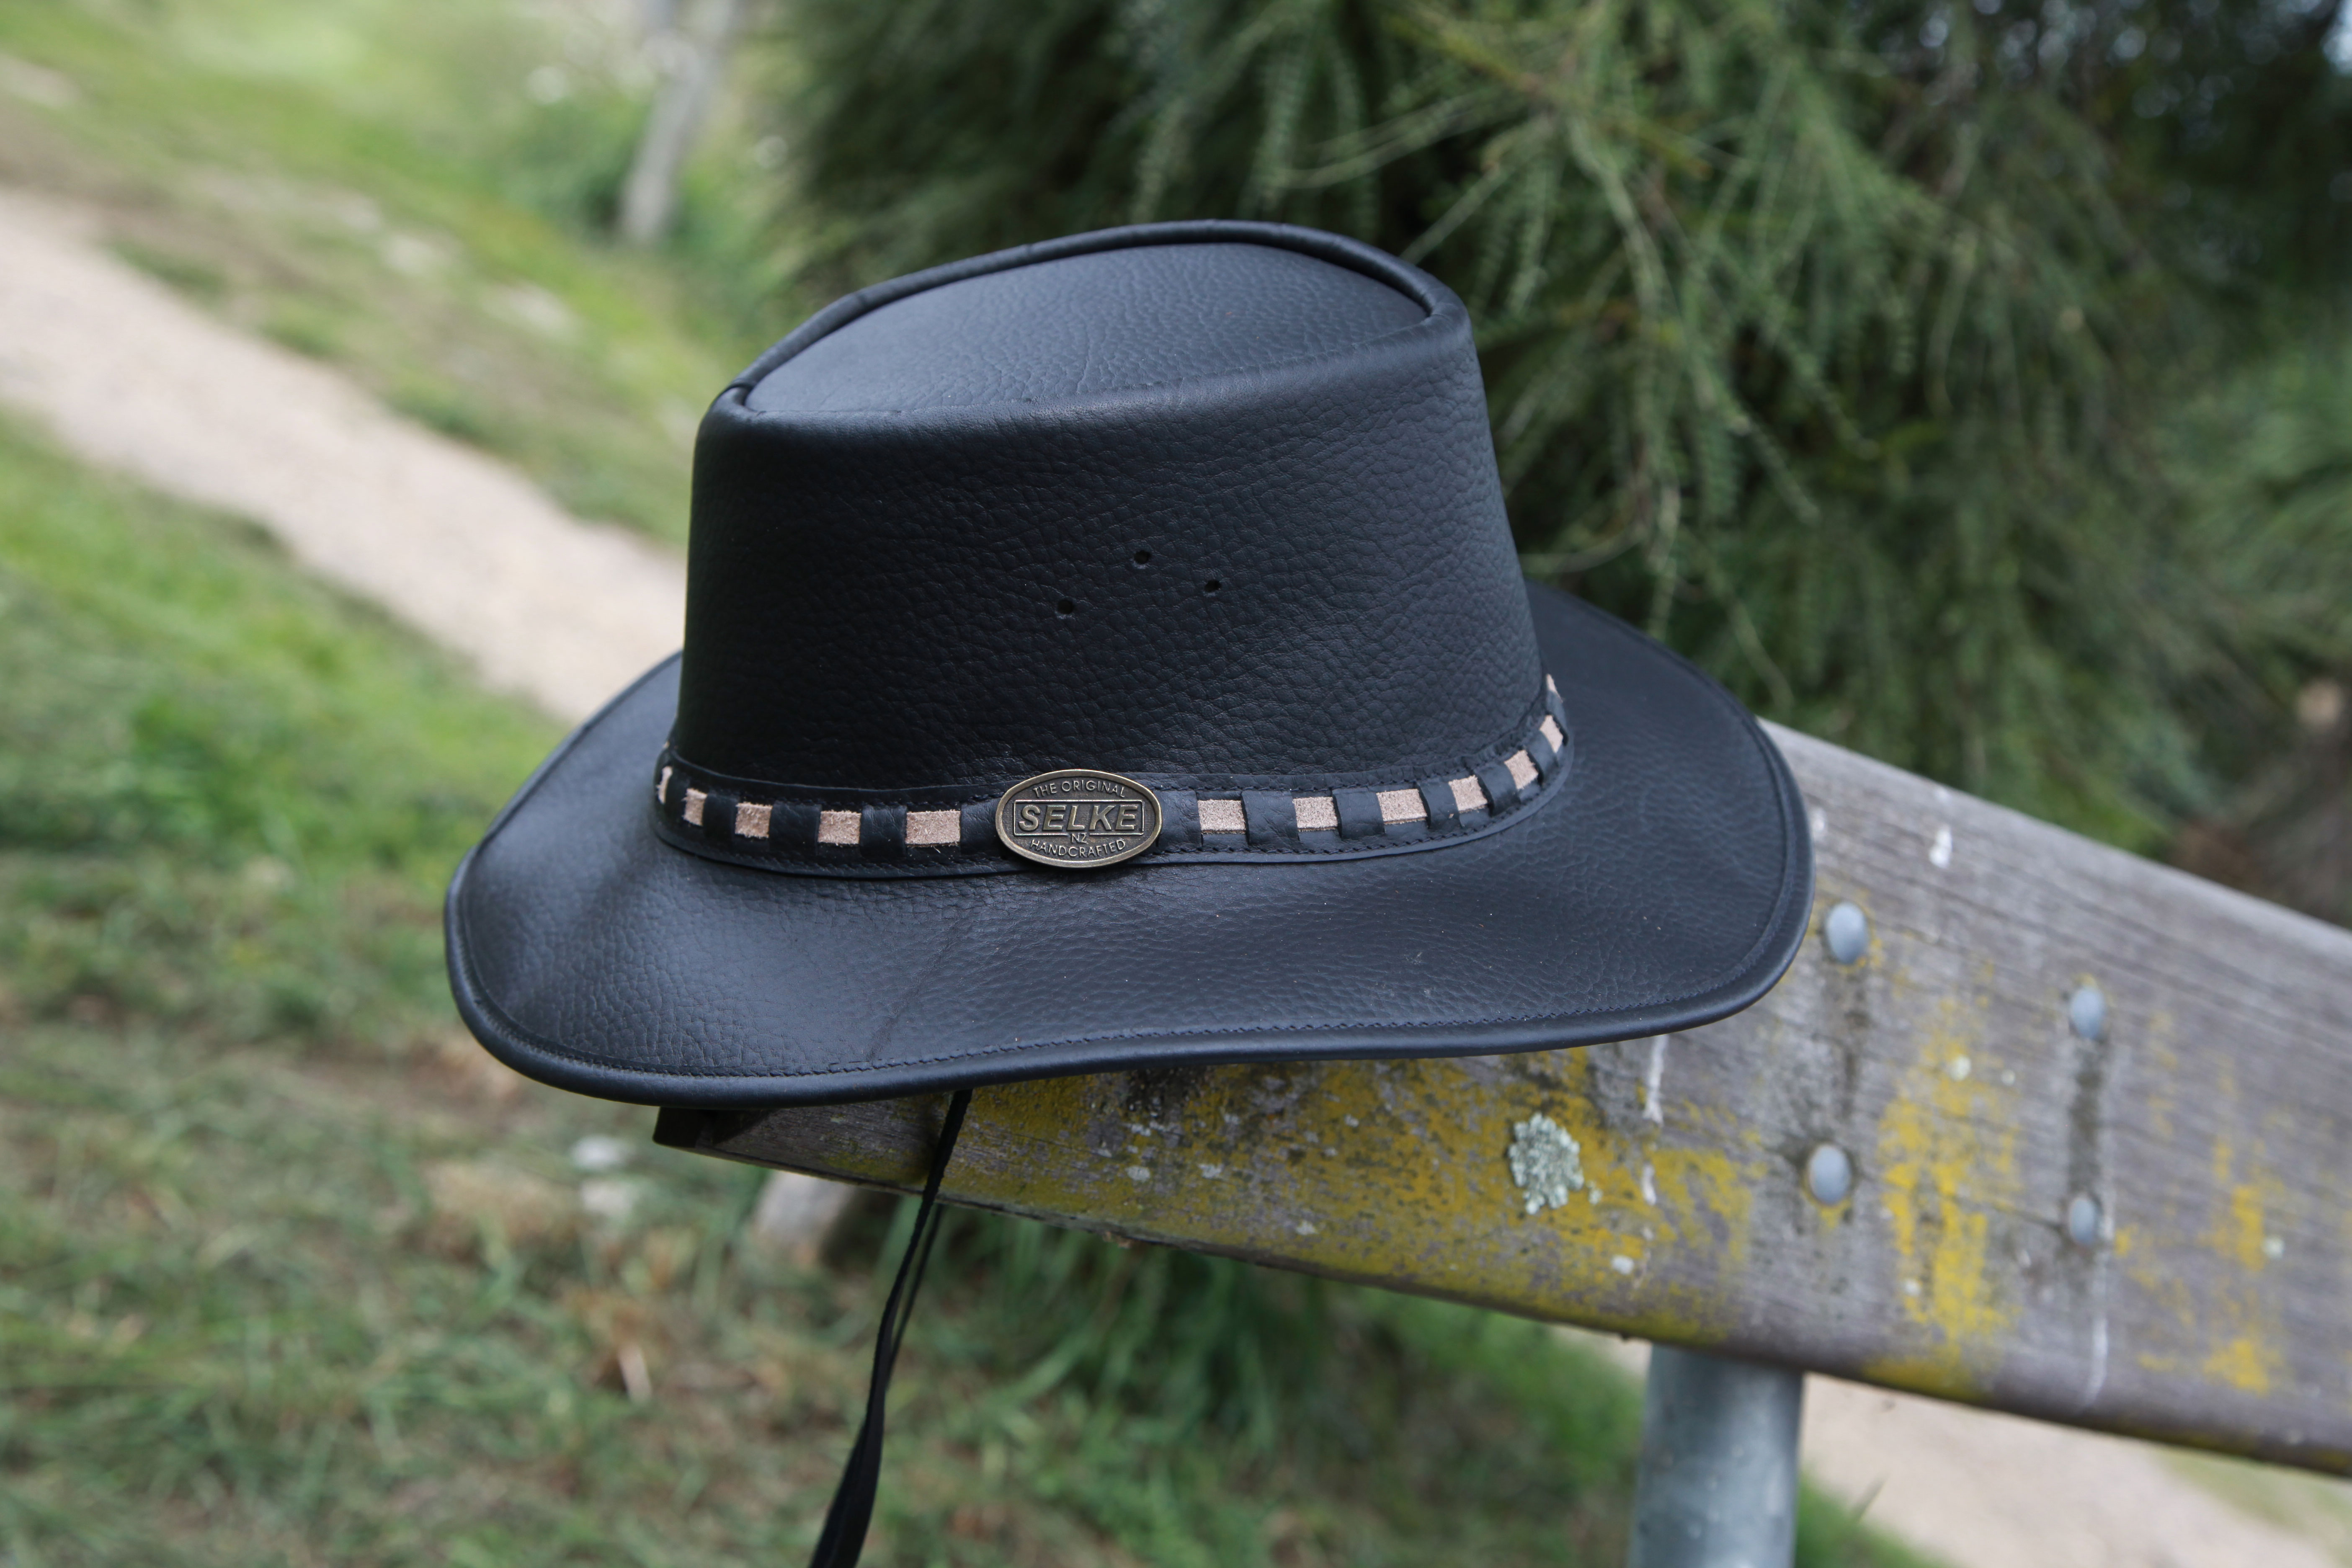 ba441396 Full Grain Leather Hat with Band - Selke NZ high quality handcrafted ...